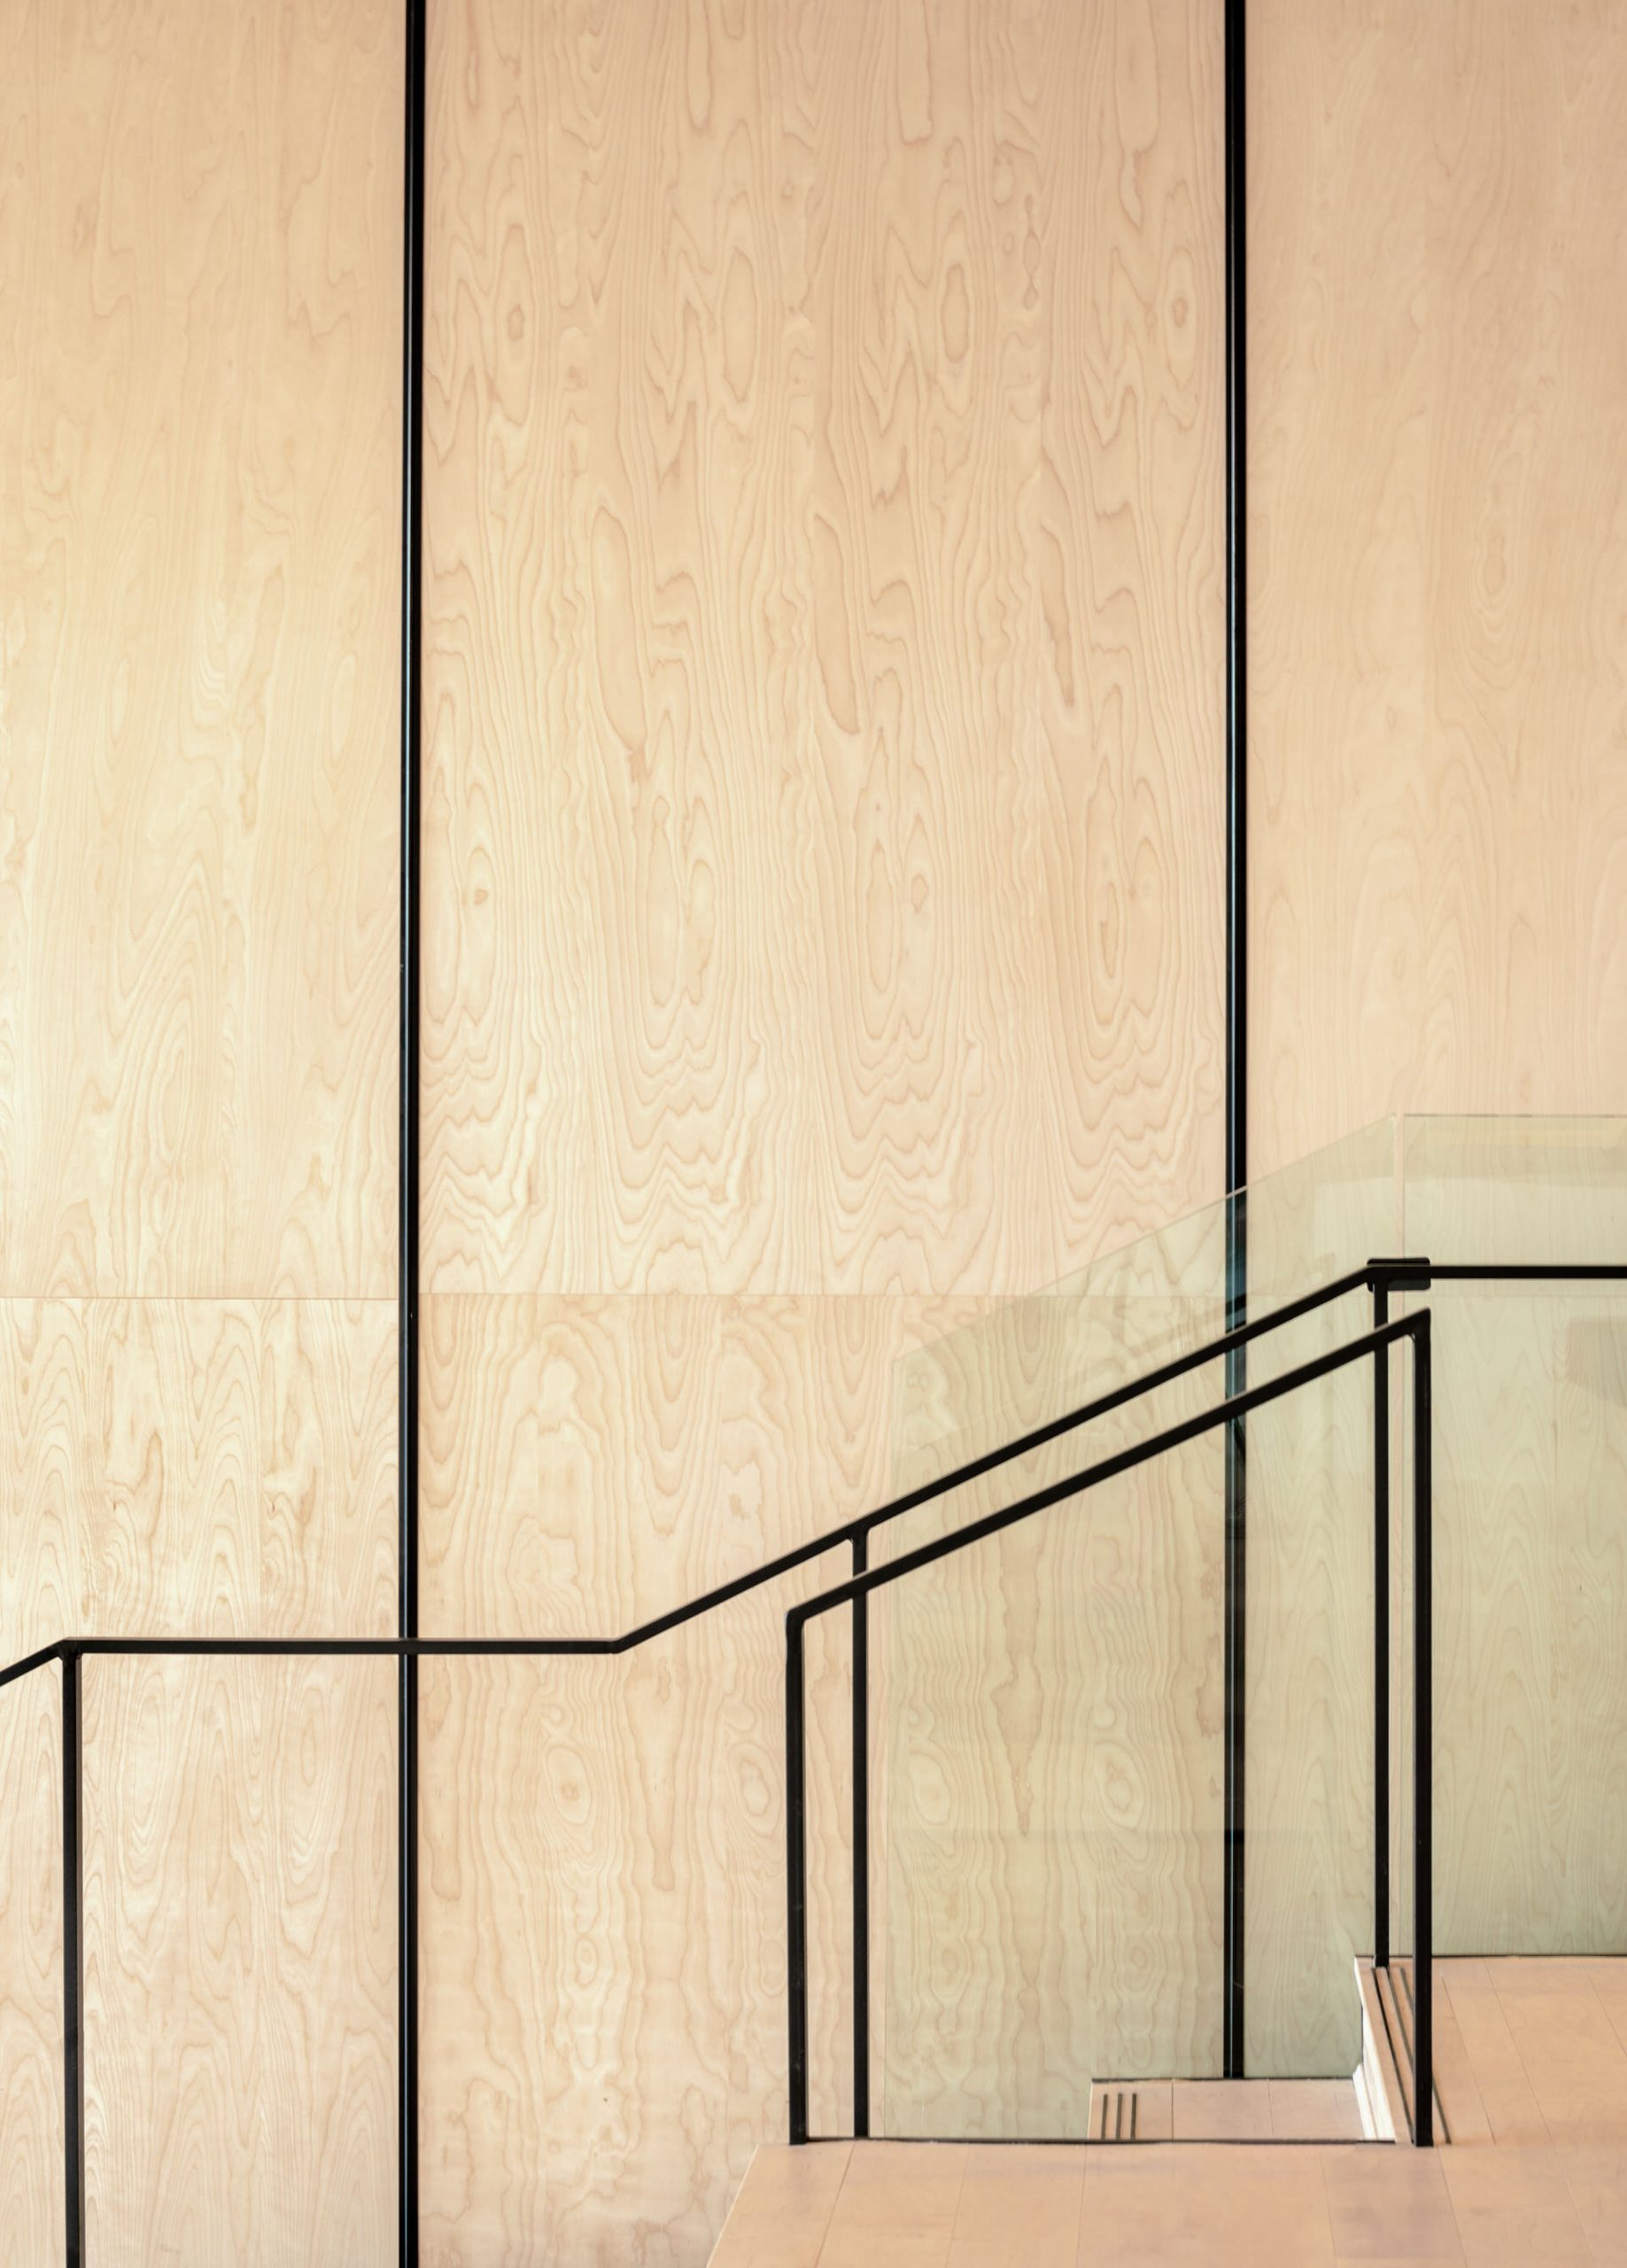 Detail of staircase and design